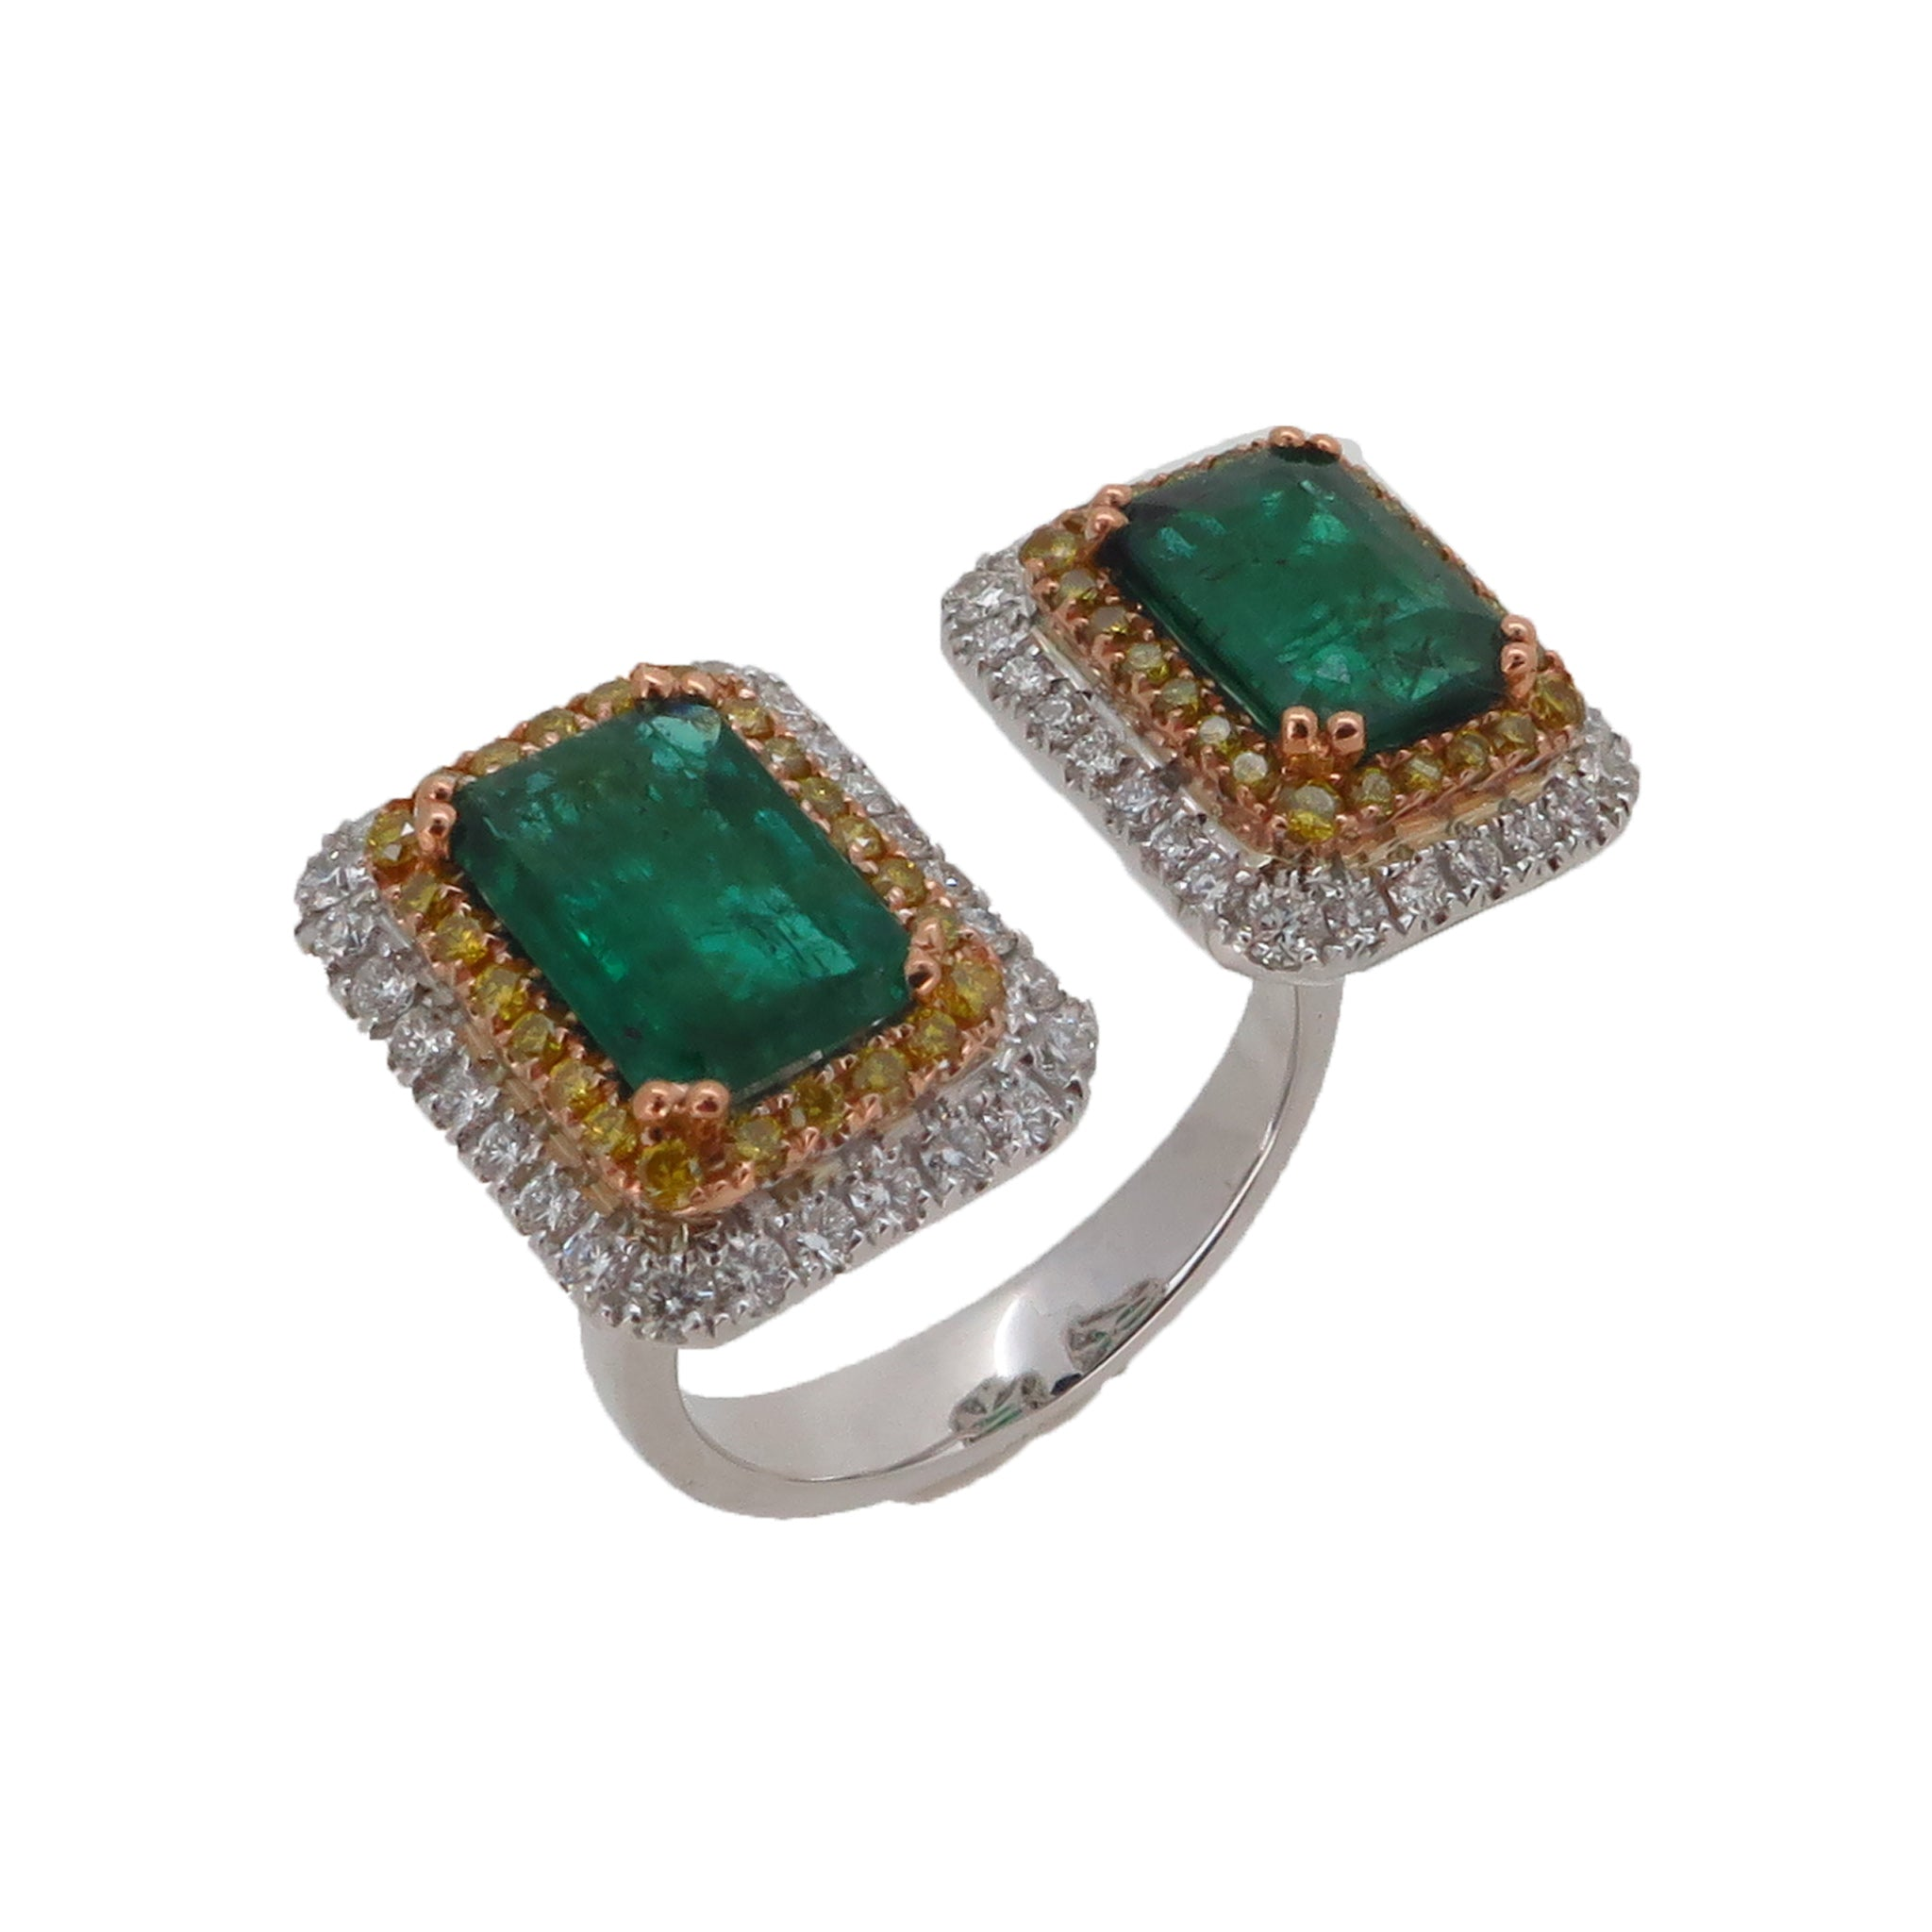 TWIN EMERALD RING